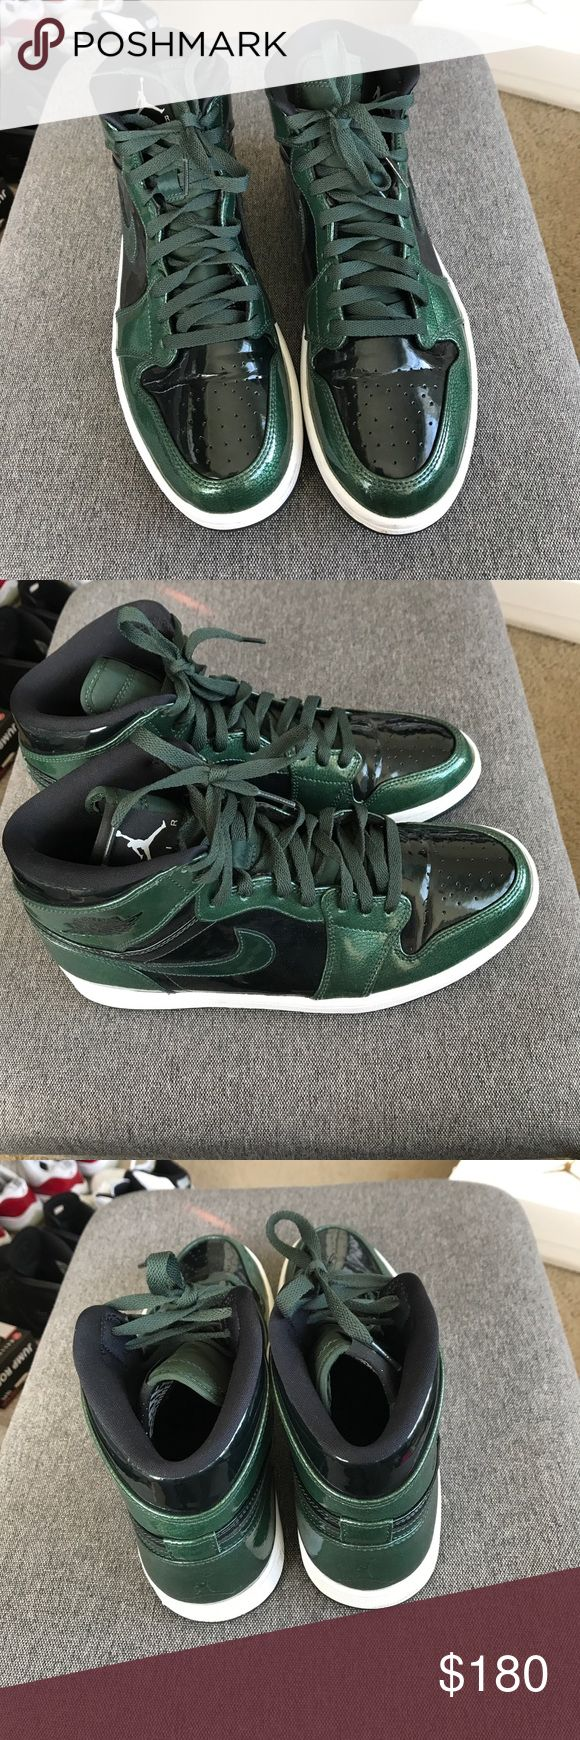 Air Jordan Retro 1 - Patent Leather green In good condition.  Like new, only worn once.  Color:  Patent Leather Green and Black style: 130690-113, year of release 2016.  Box not included. Air Jordan Shoes Athletic Shoes